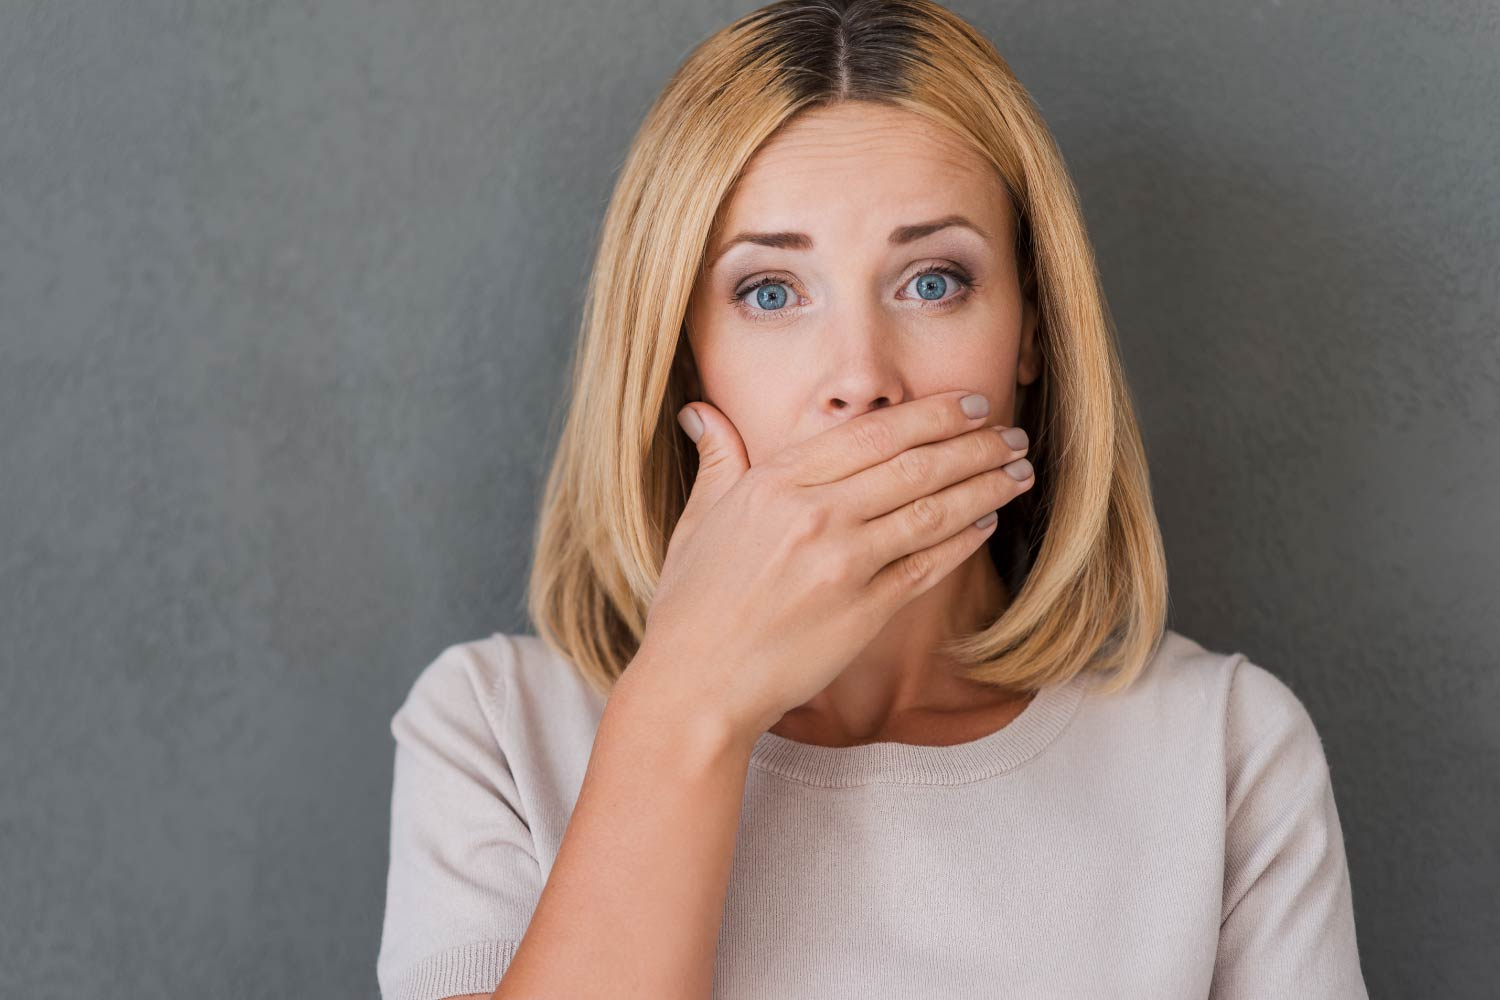 Blonde woman with brown roots covers her mouth in embarrassment because she has bad breath